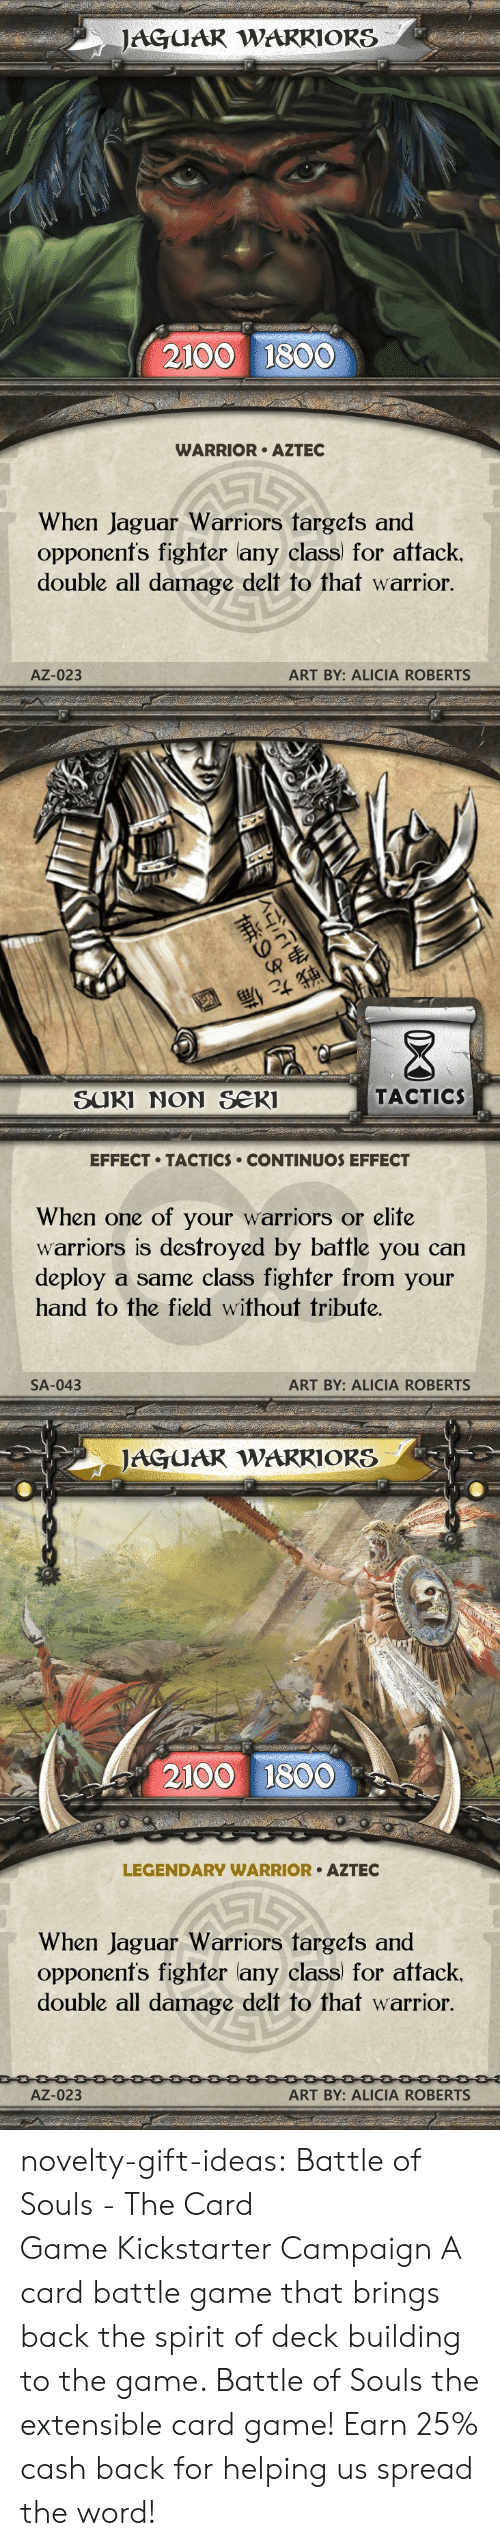 The Game, Tumblr, and Blog: JAGUAR WARRIORS  2100 1800  WARRIOR AZTEC  When Jaguar Warriors targets and  opponenfs fighter lany class for attack.  double all damage delt to that warrior.  AZ-023  ART BY: ALICIA ROBERTS   退  SUKI NON Se  TACTIC  EFFECT TACTICS CONTINUOS EFFECT  When one of your warriors or elite  warriors is destroyed by battle you can  deploy a same class fighfer from your  hand to the field without tribute.  SA-043  ART BY: ALICIA ROBERTS   JAGUAR WAKRIORS  2100 1800  LEGENDARY WARRIOR AZTEC  When Jaguar Warriors fargets and  opponenfs fighter lany class) for attack.  double all damage delt to that warrior  AZ-023  ART BY: ALICIA ROBERTS novelty-gift-ideas: Battle of Souls - The Card GameKickstarter Campaign A card battle game that brings back the spirit of deck building to the game. Battle of Souls the extensible card game!   Earn 25% cash back for helping us spread the word!